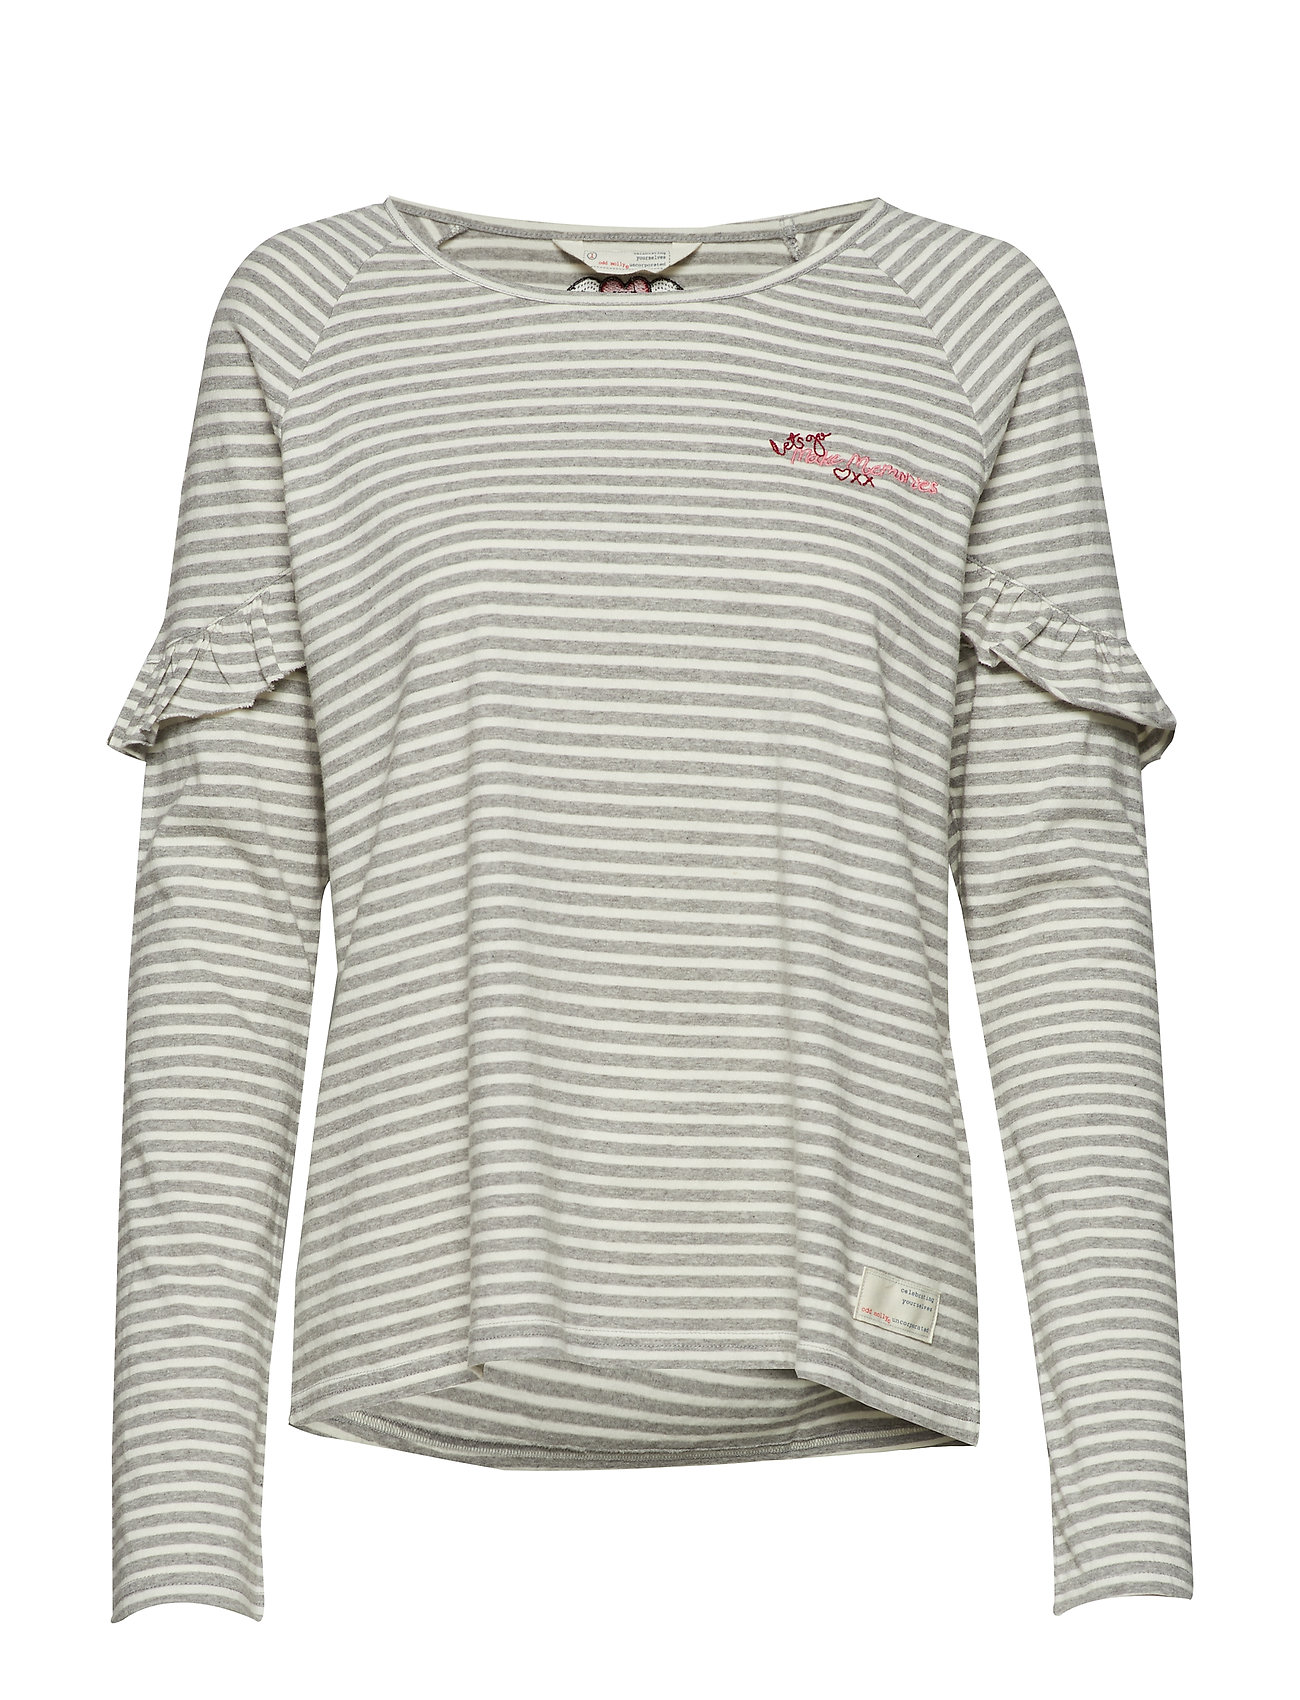 ODD MOLLY hey tiger top - GREY MELANGE